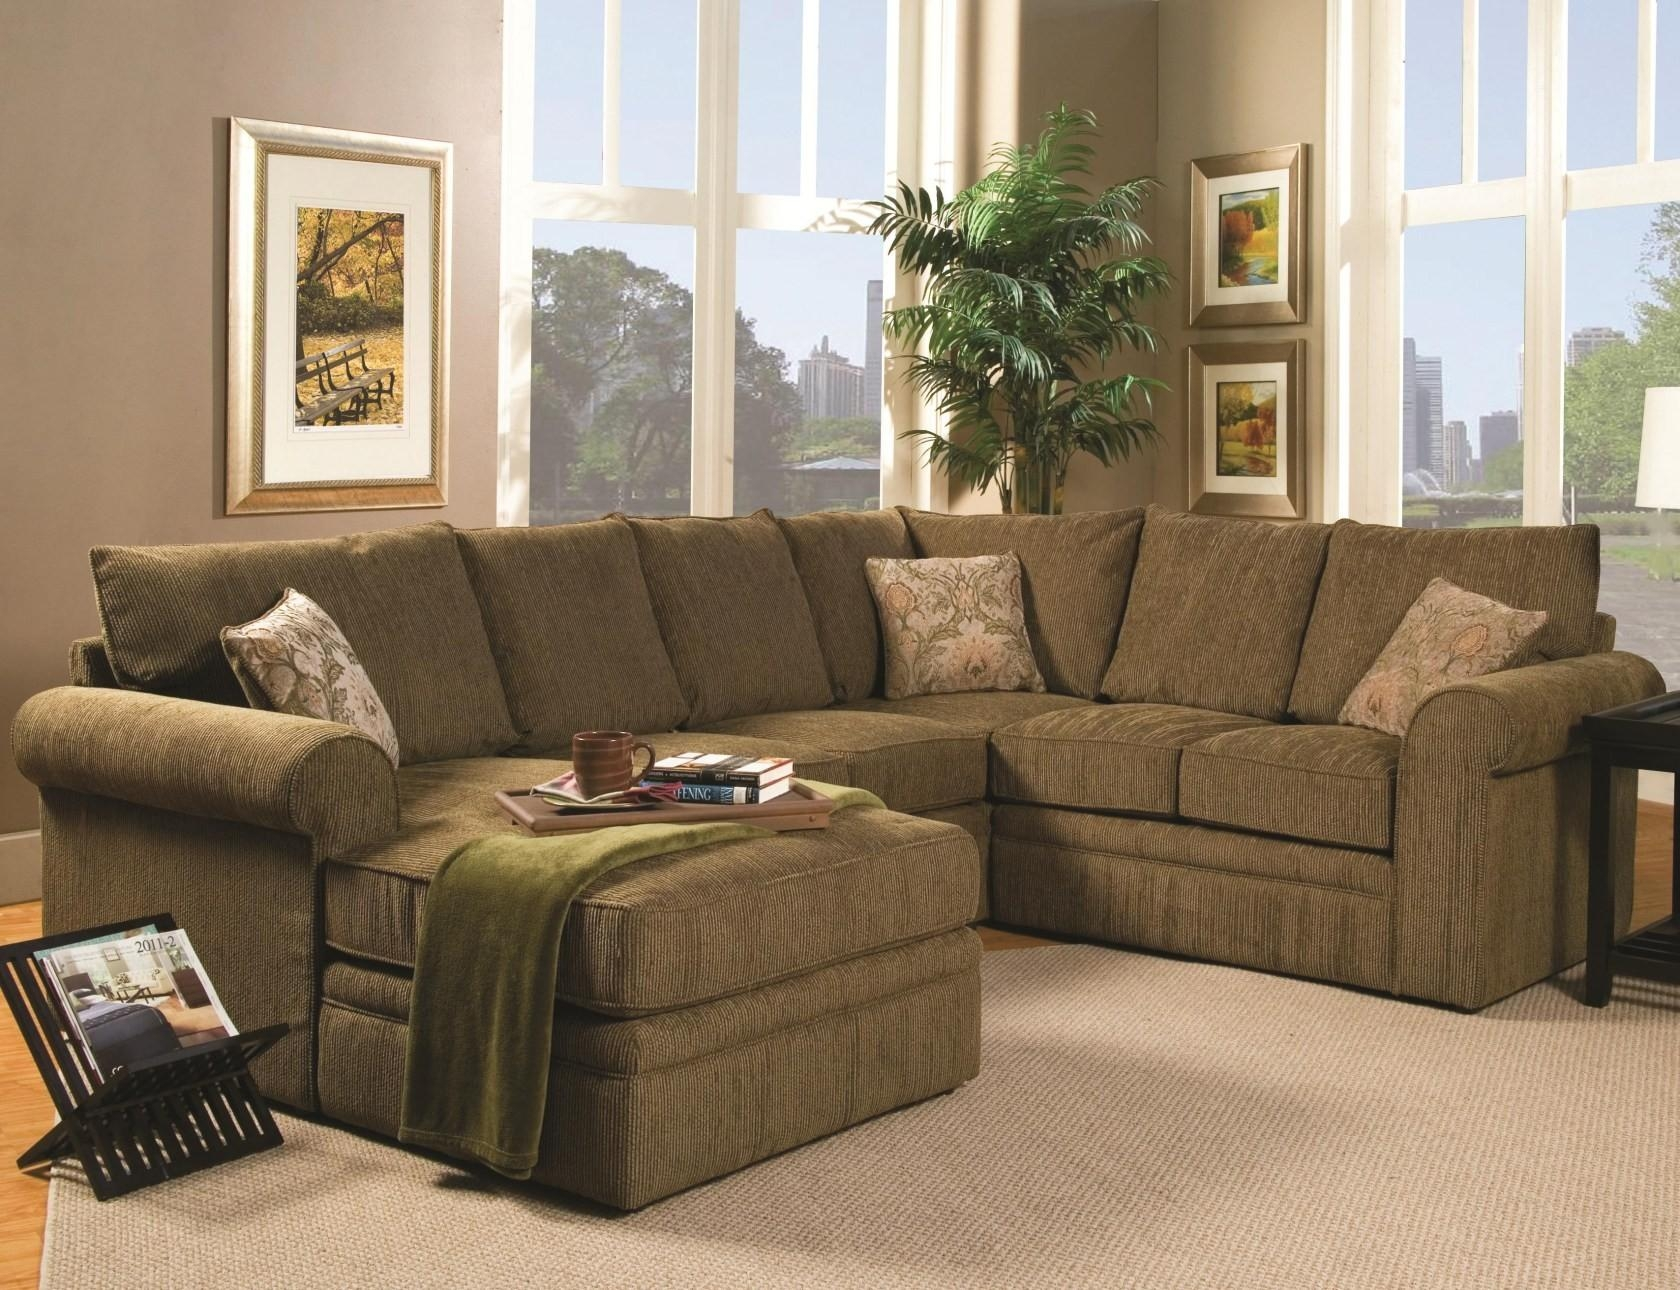 The Big Room For U Shaped Leather Sectional Sofa : S3Net Regarding Sectinal Sofas (Image 20 of 20)